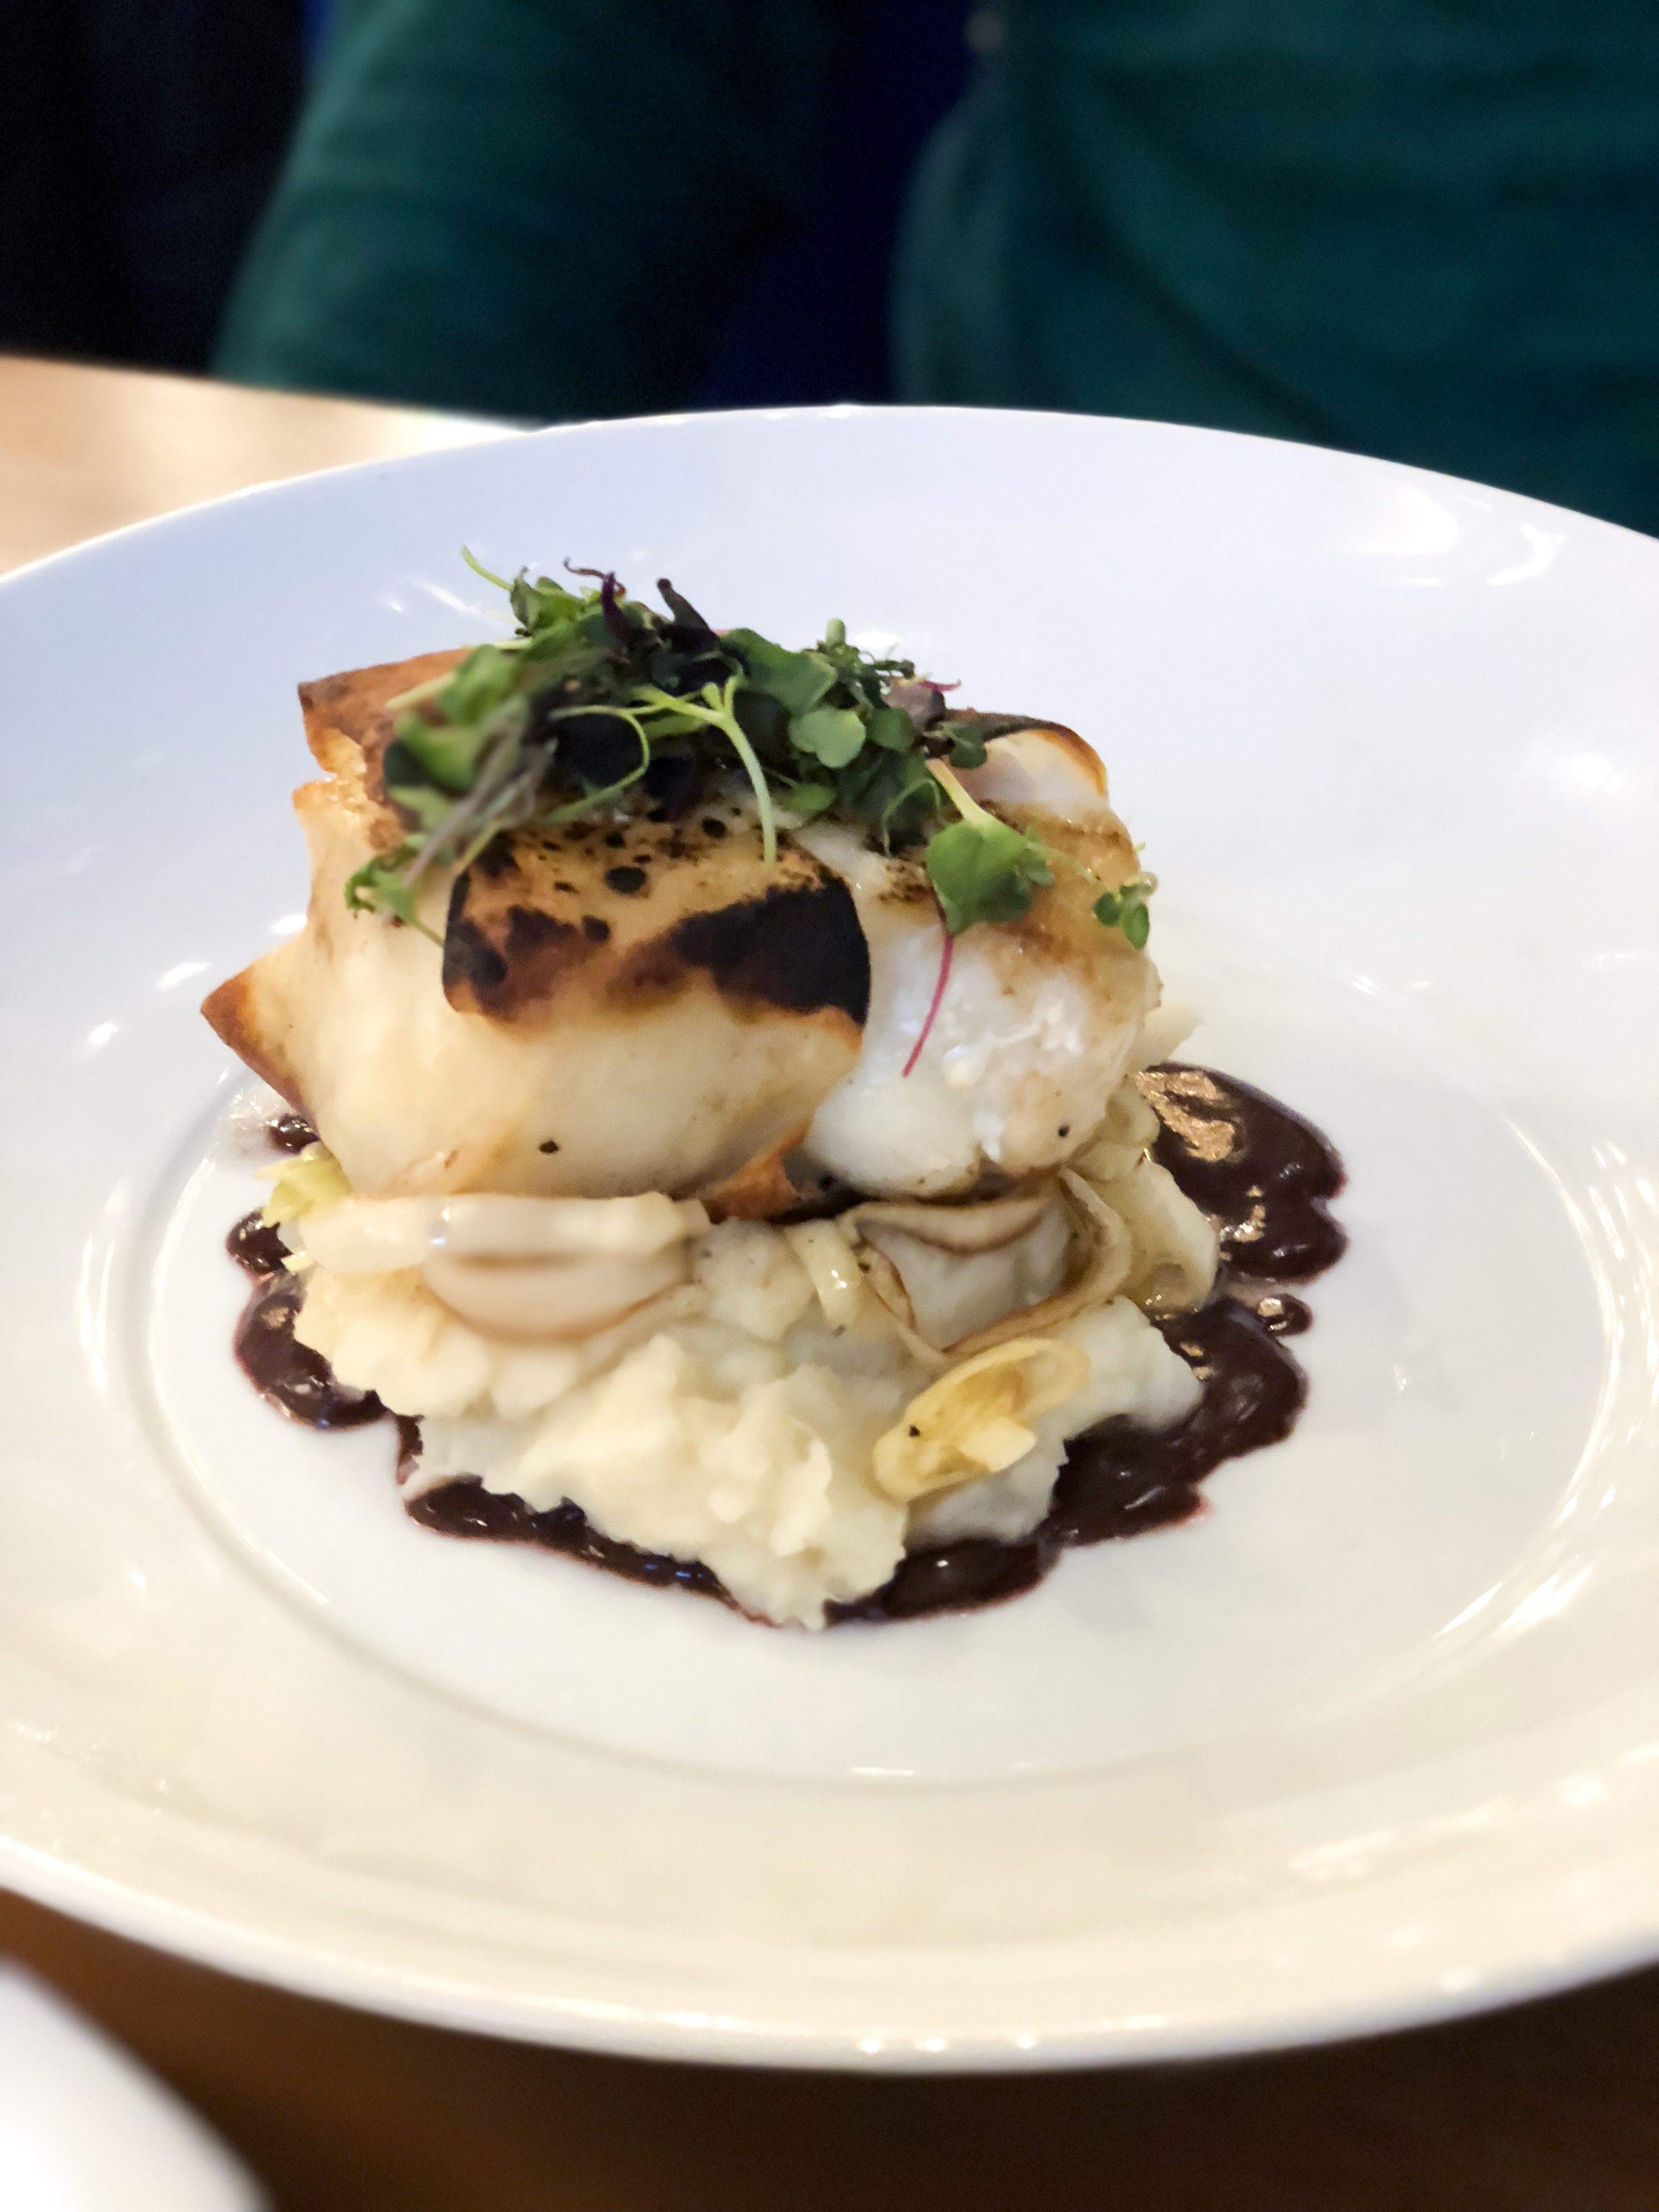 Fresh sea bass served on a bed of mashed potatoes with a red wine reduction